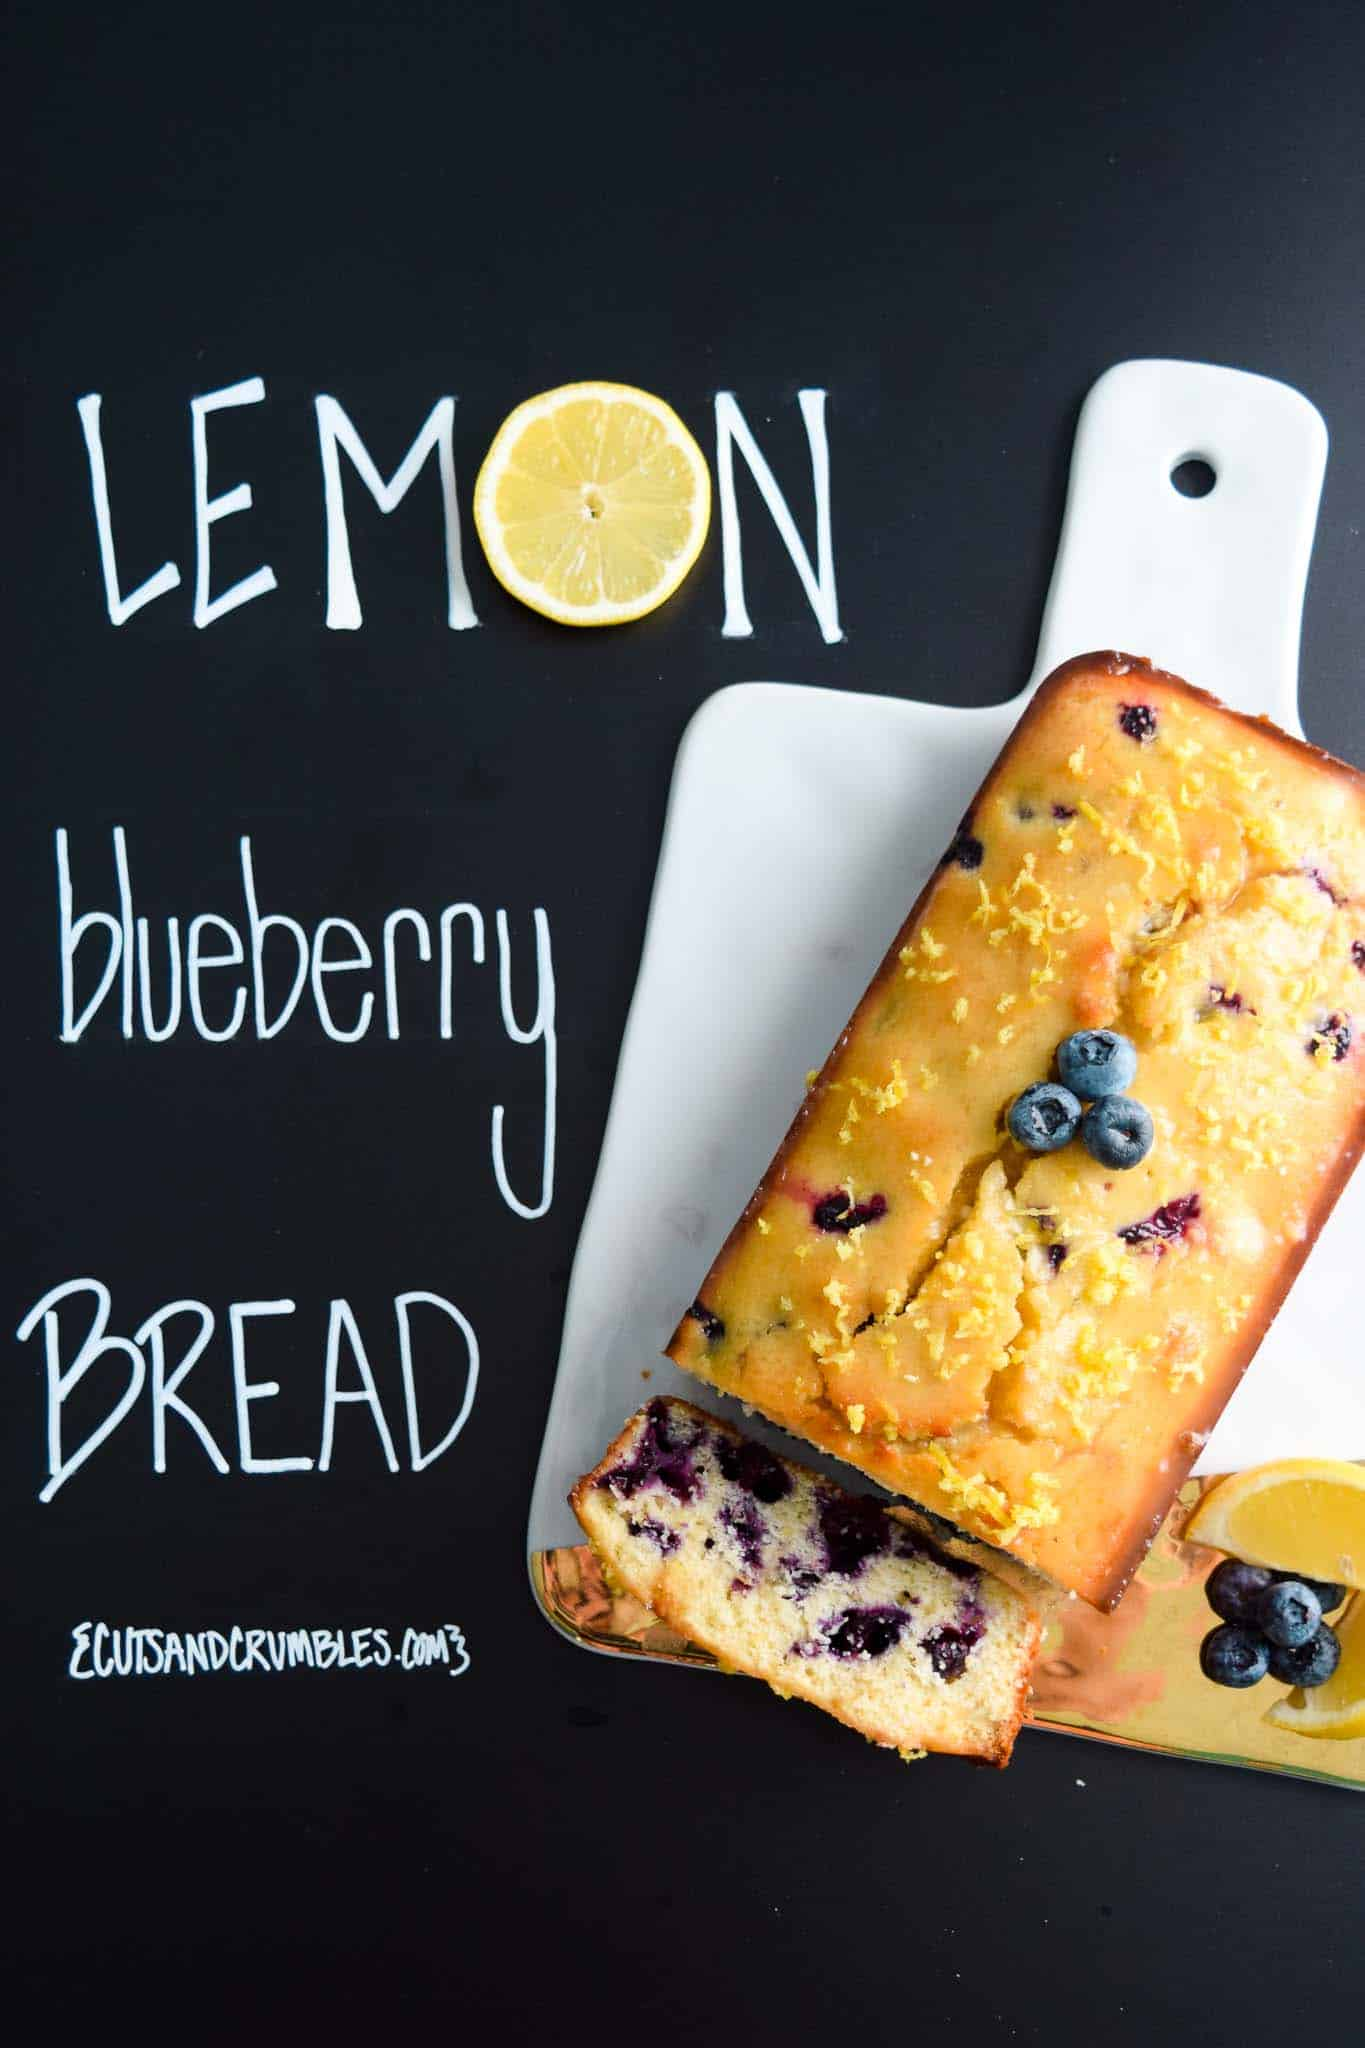 lemon blueberry bread with title written on chalkboard